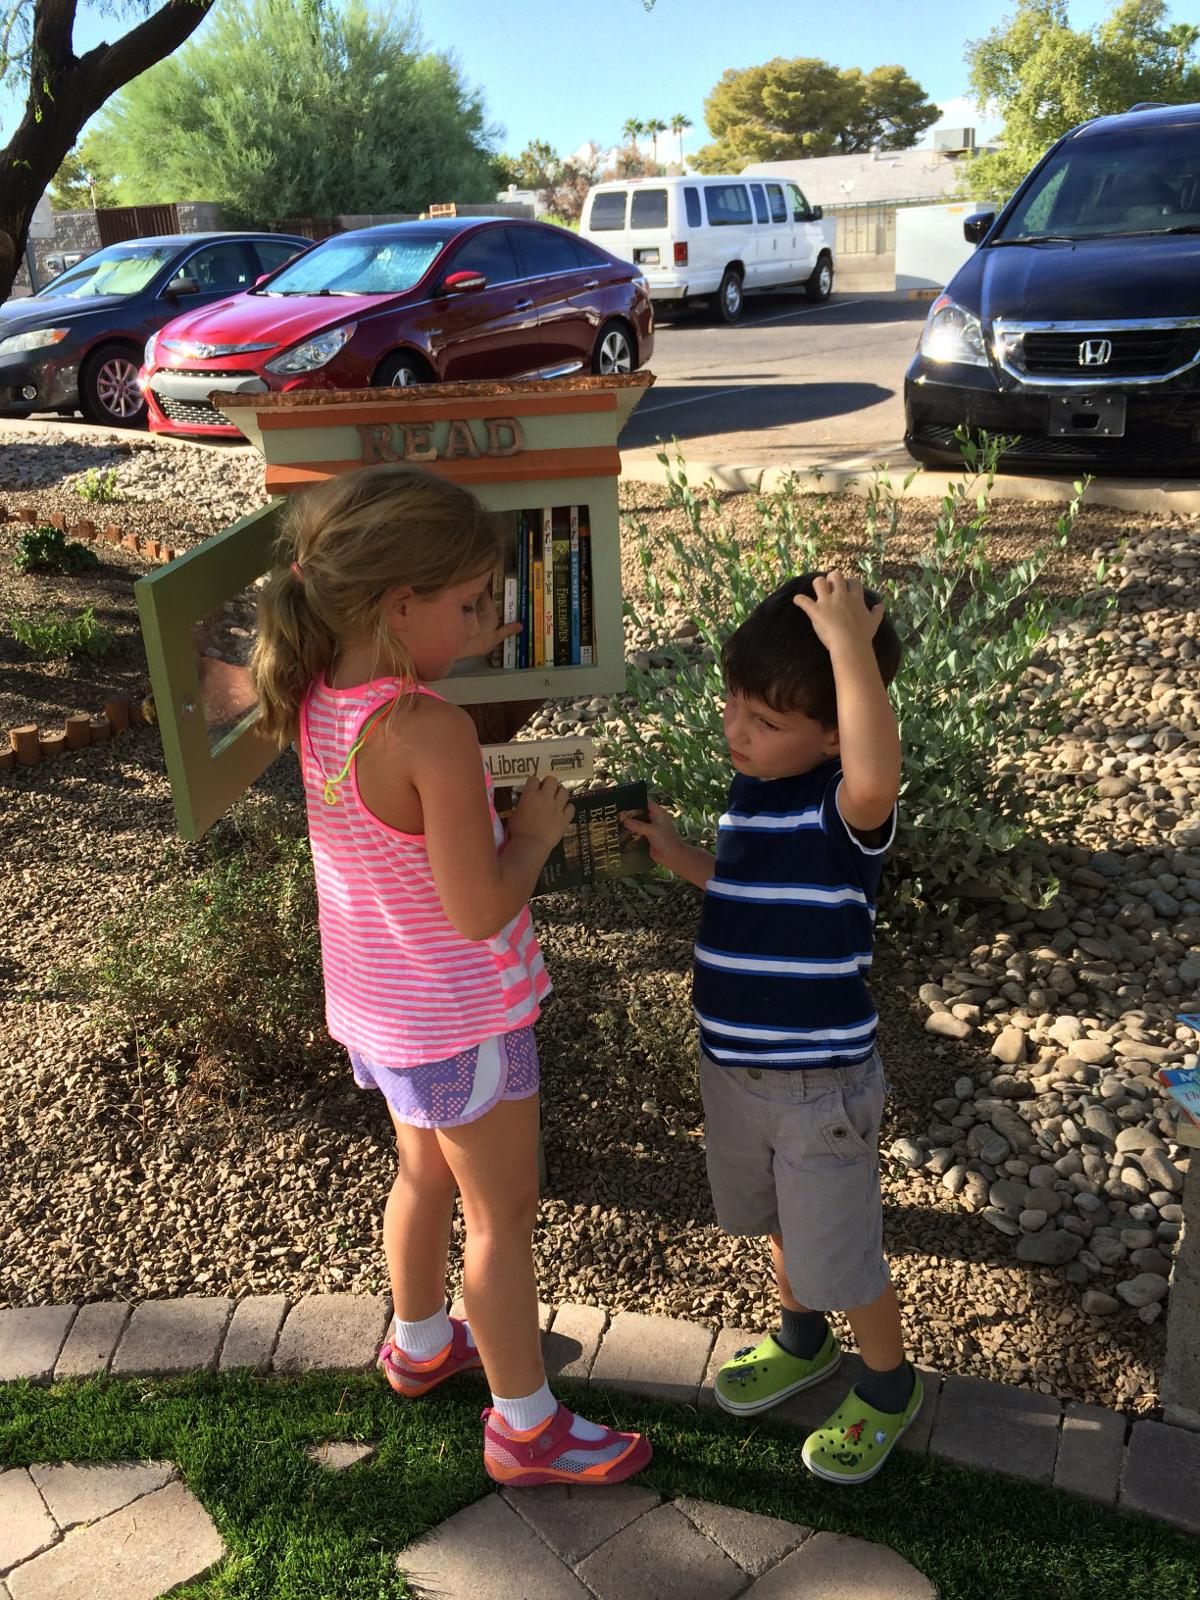 Building a community: Little Free Libraries popping up across ...